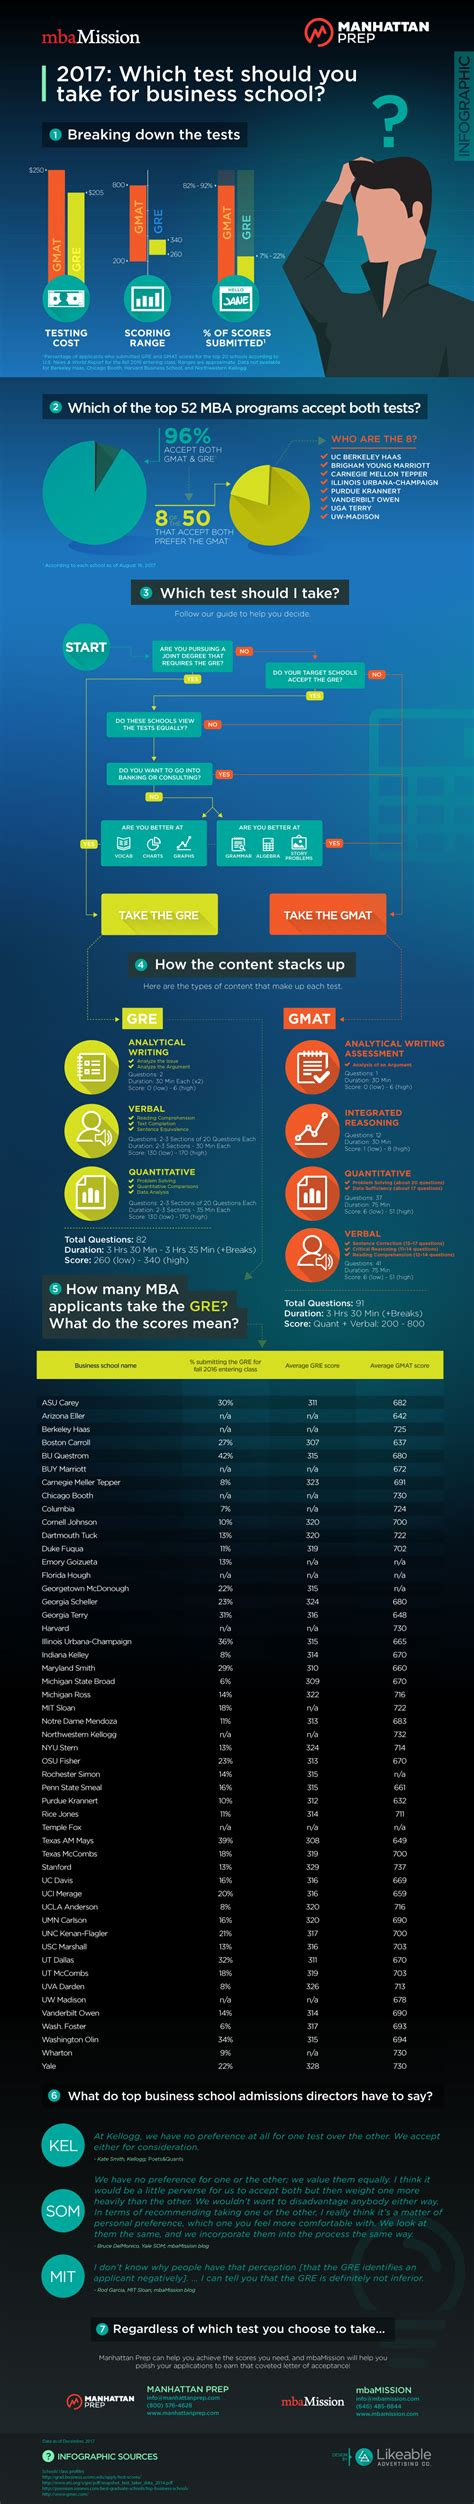 Manhattan Prep Mba Resume by Mbamission And Manhattan Prep S Gmat Vs Gre Infographic